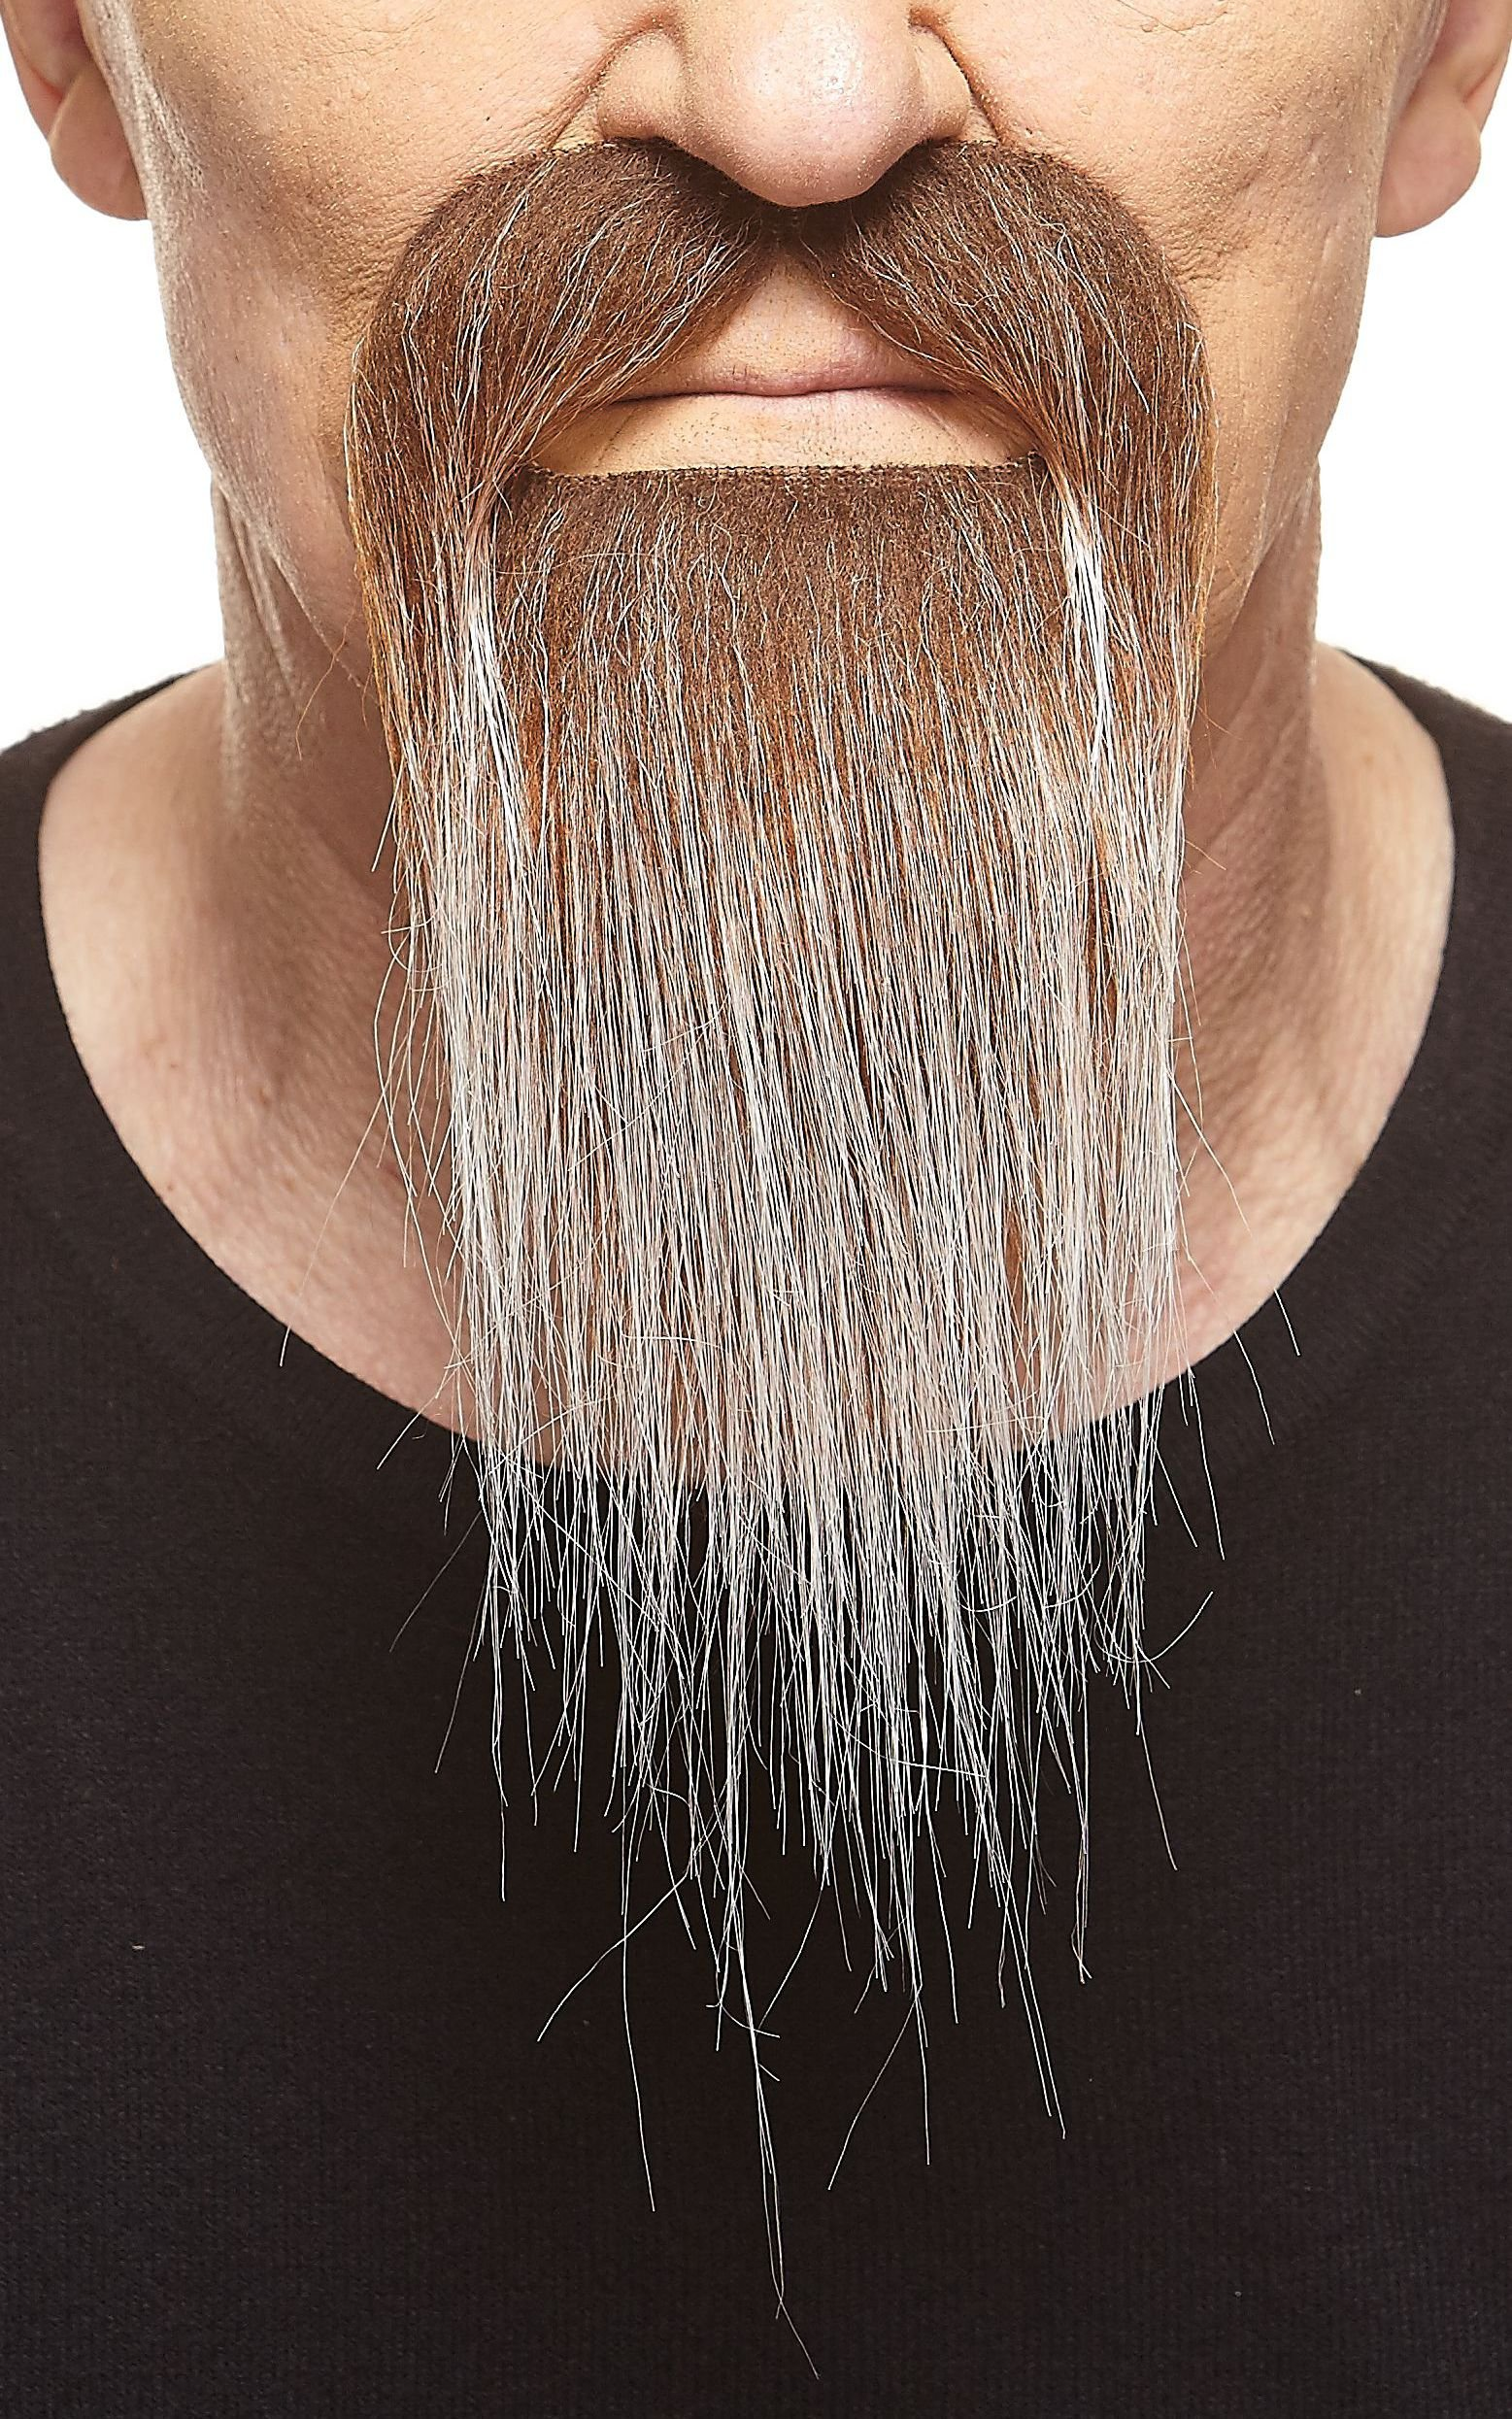 Mustaches Self Adhesive, Novelty, Fake Ducktail Beard, Brown with Gray Color